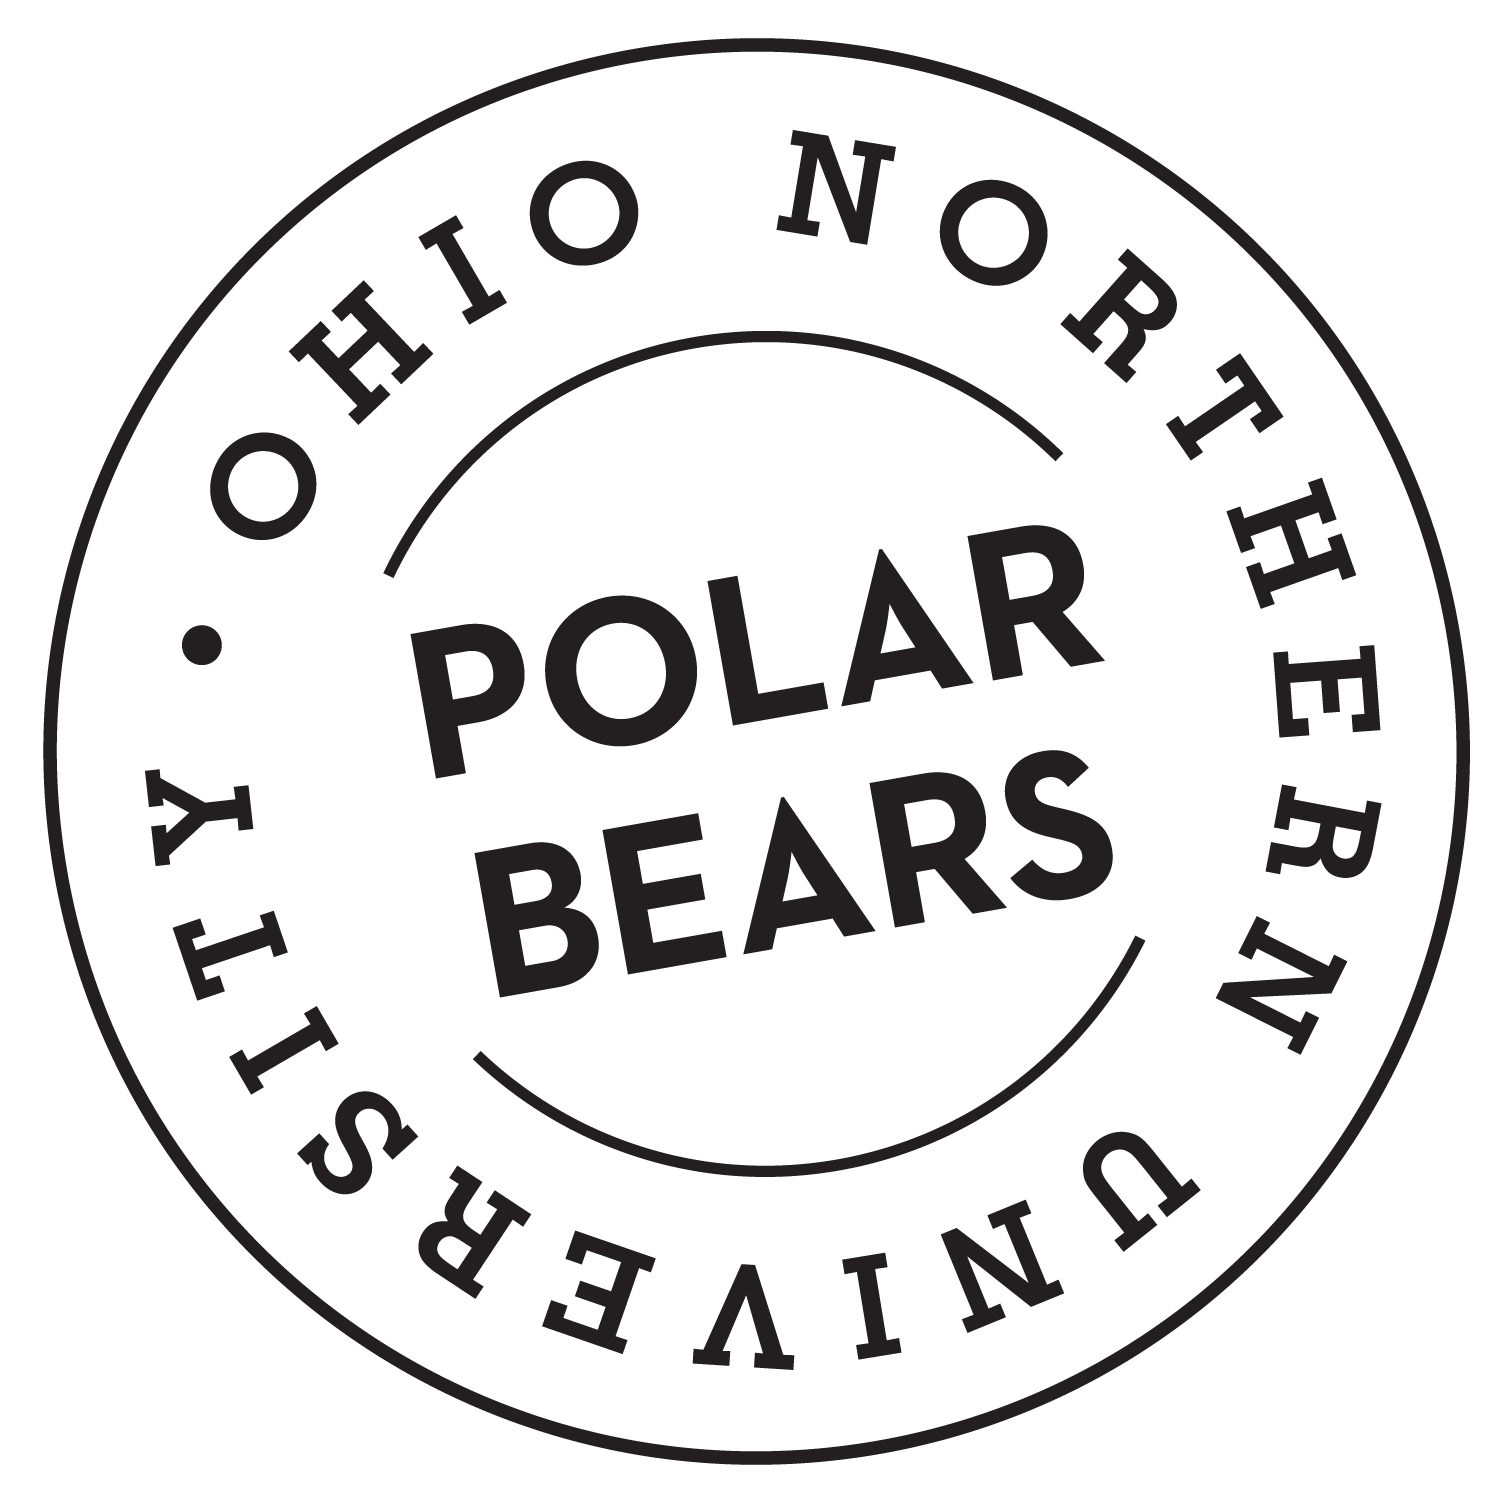 dining onu polar bears